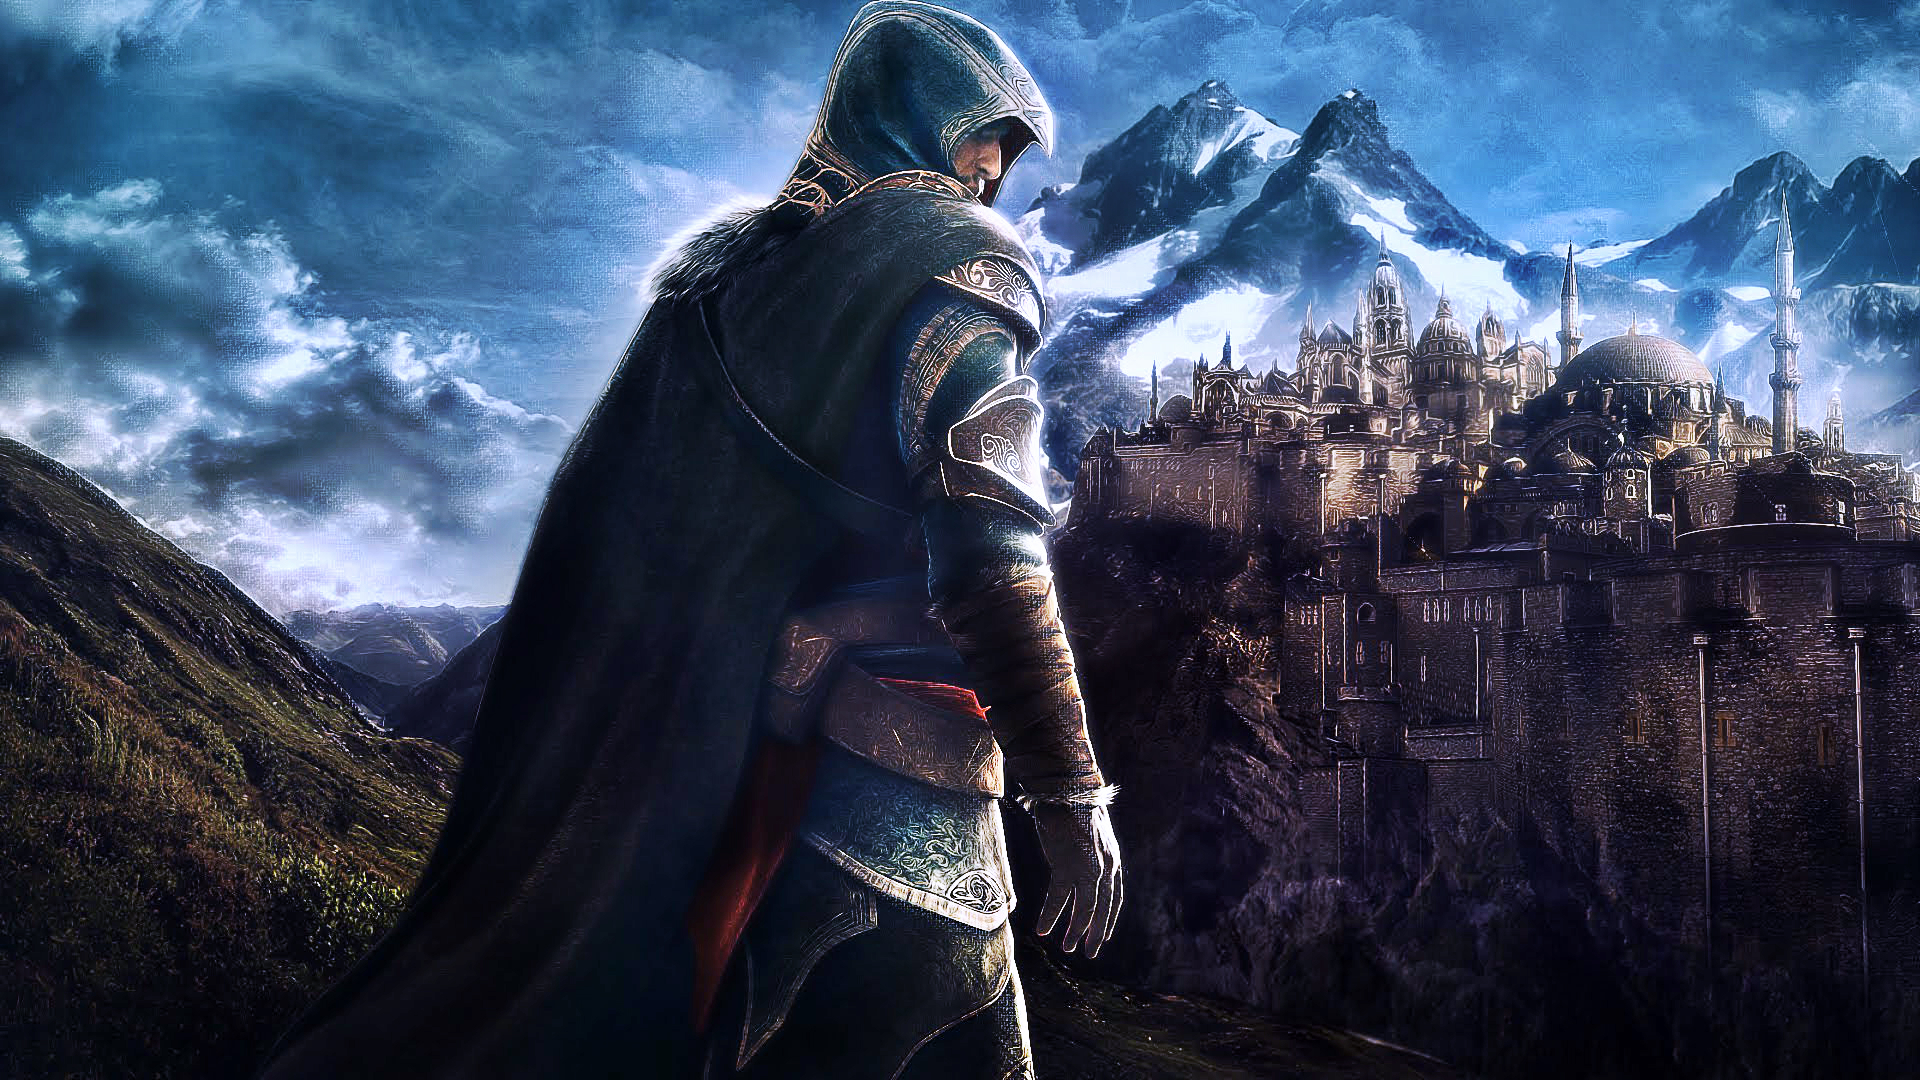 10 Latest Wallpaper Hd Games 2015 Full Hd 1080p For Pc: Hd Game Wallpapers